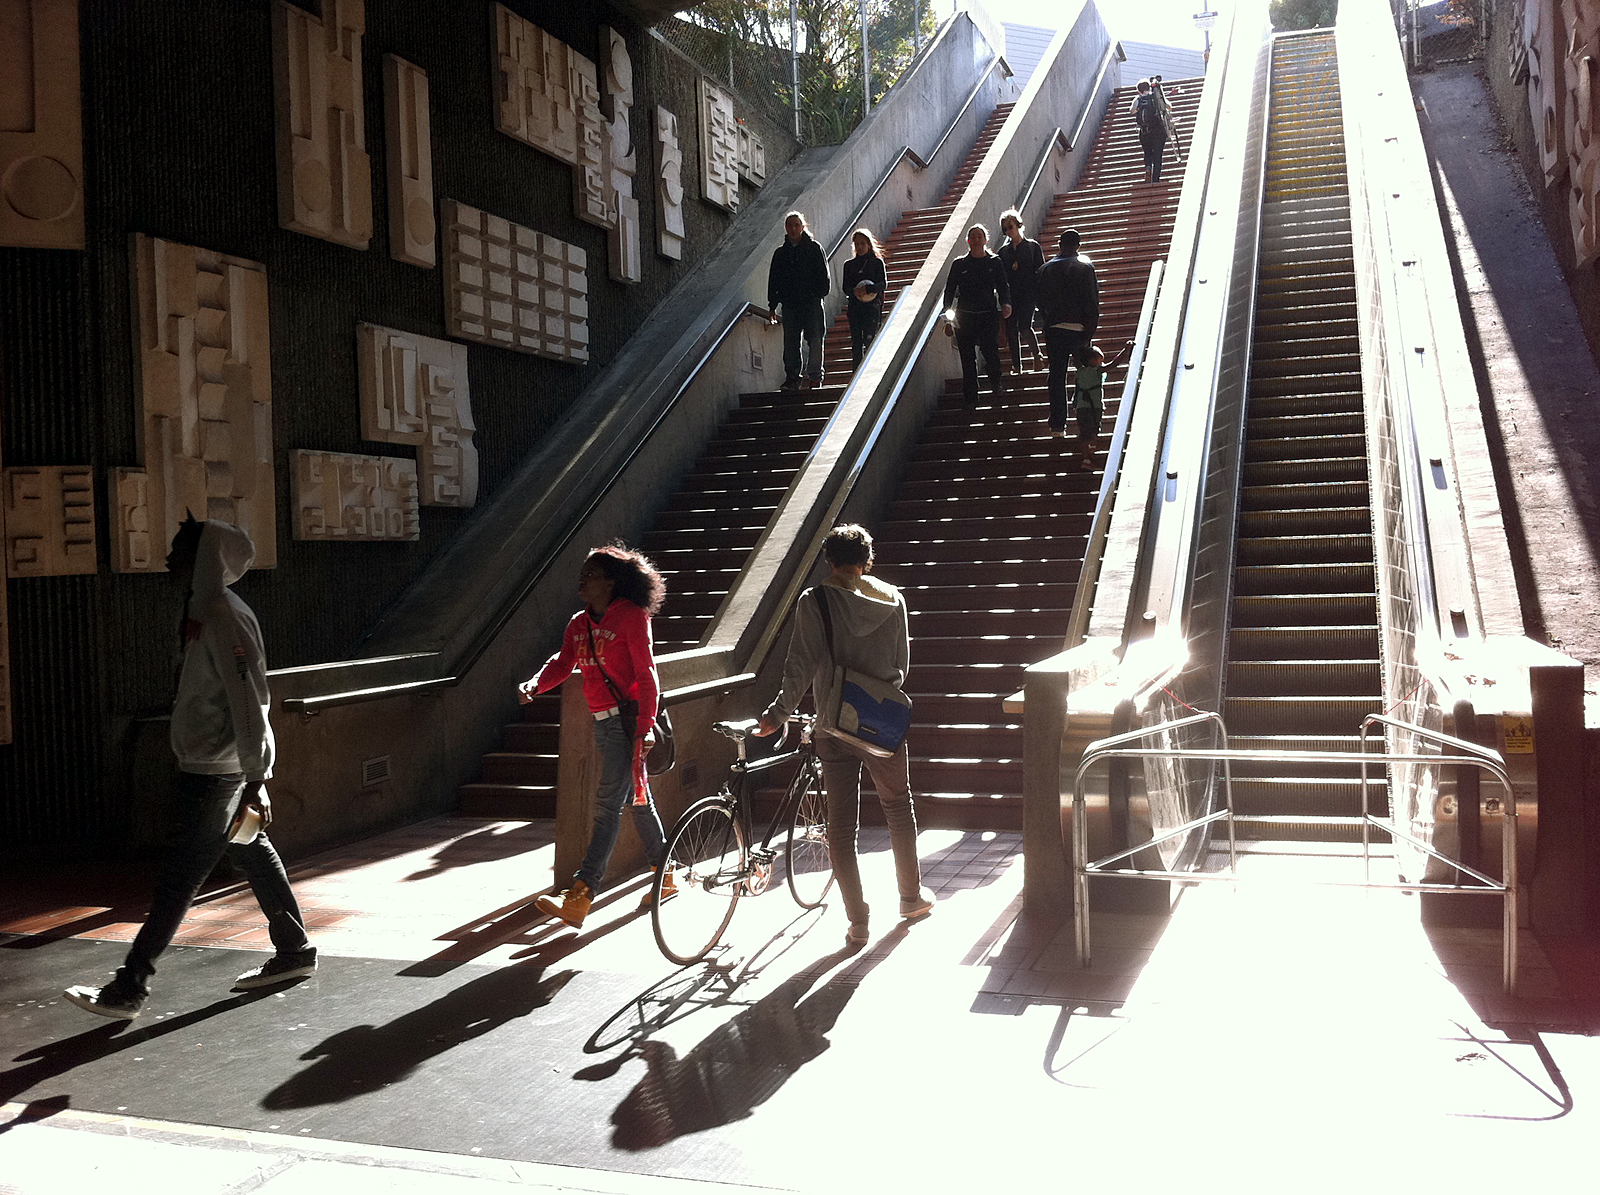 The disabled southwest escalator at 24th Street Mission BART forces passengers to use the stairs to reach the plaza.